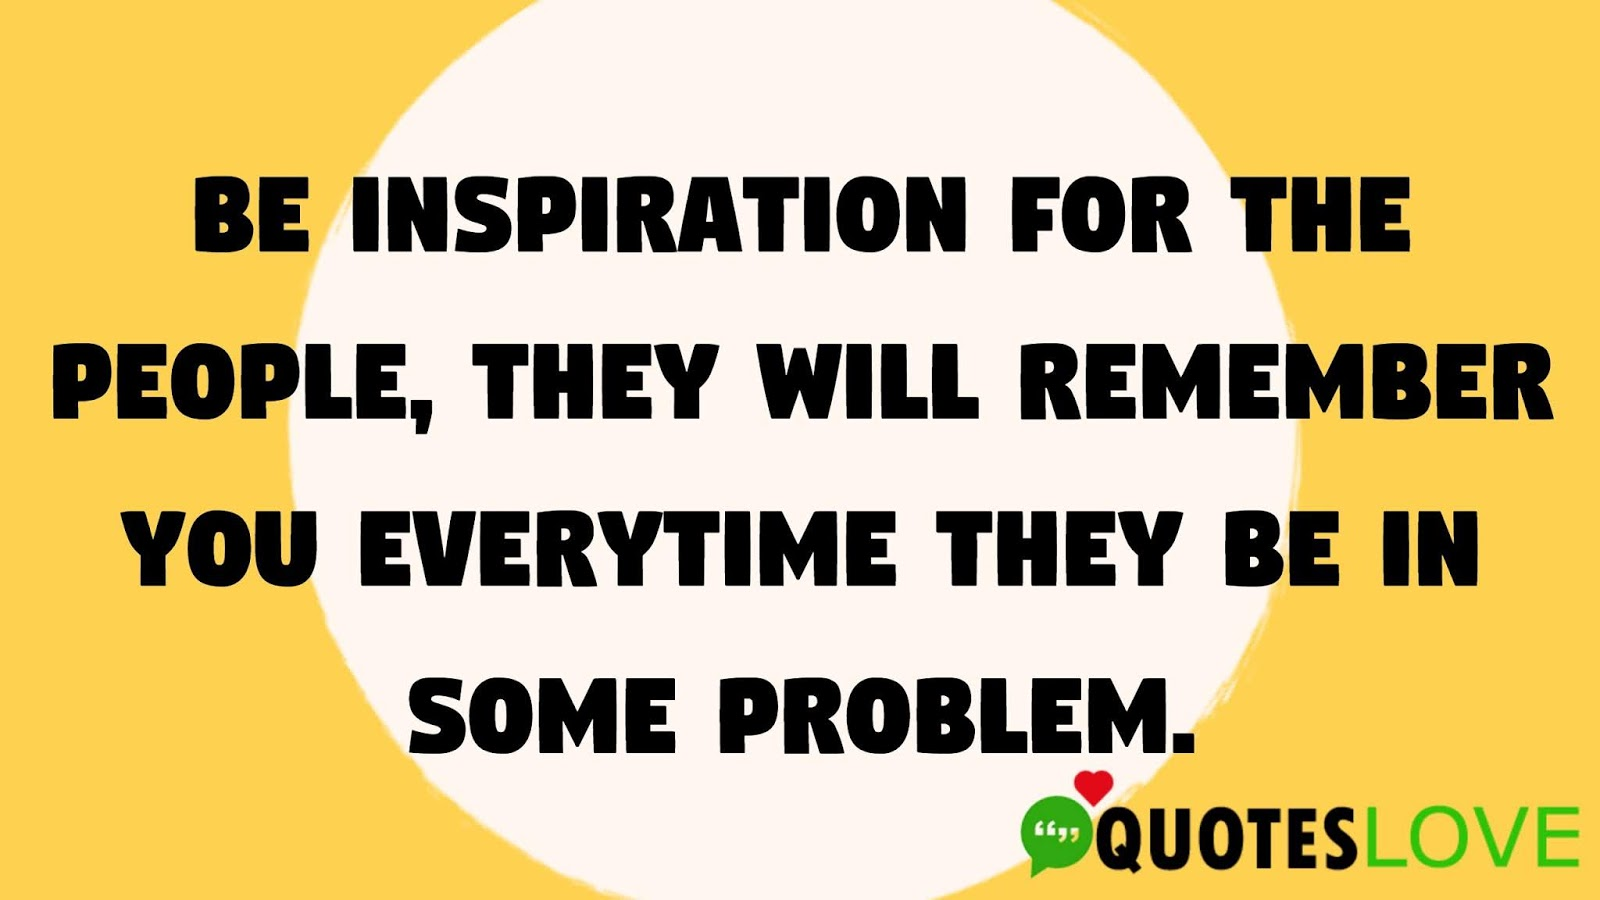 Be inspiration for the people, They will remember you everytime they be in some problem.